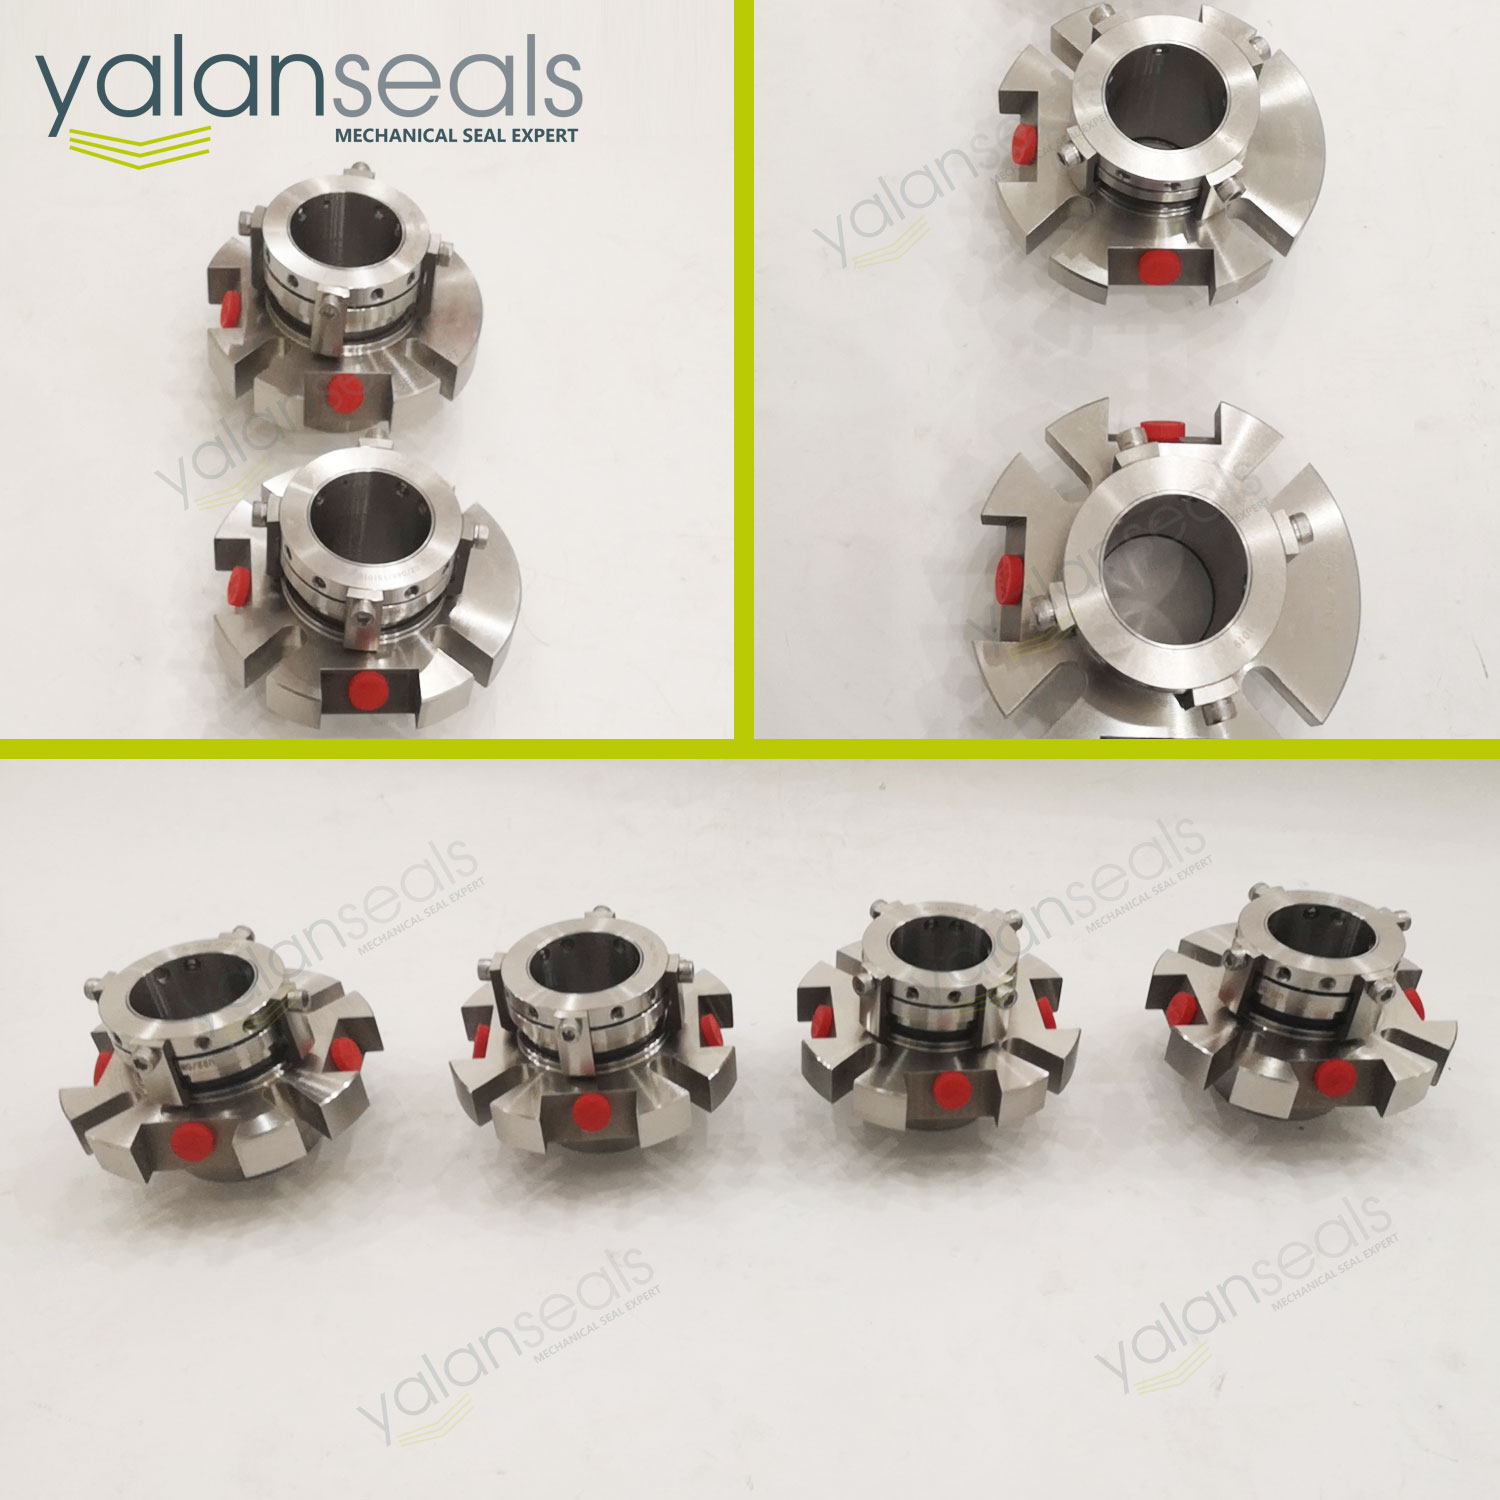 YALAN Retrofit Mechanical Seals for AES CDPN Double Cartridge Seals for Pulp Pumps and Chemical Pumps